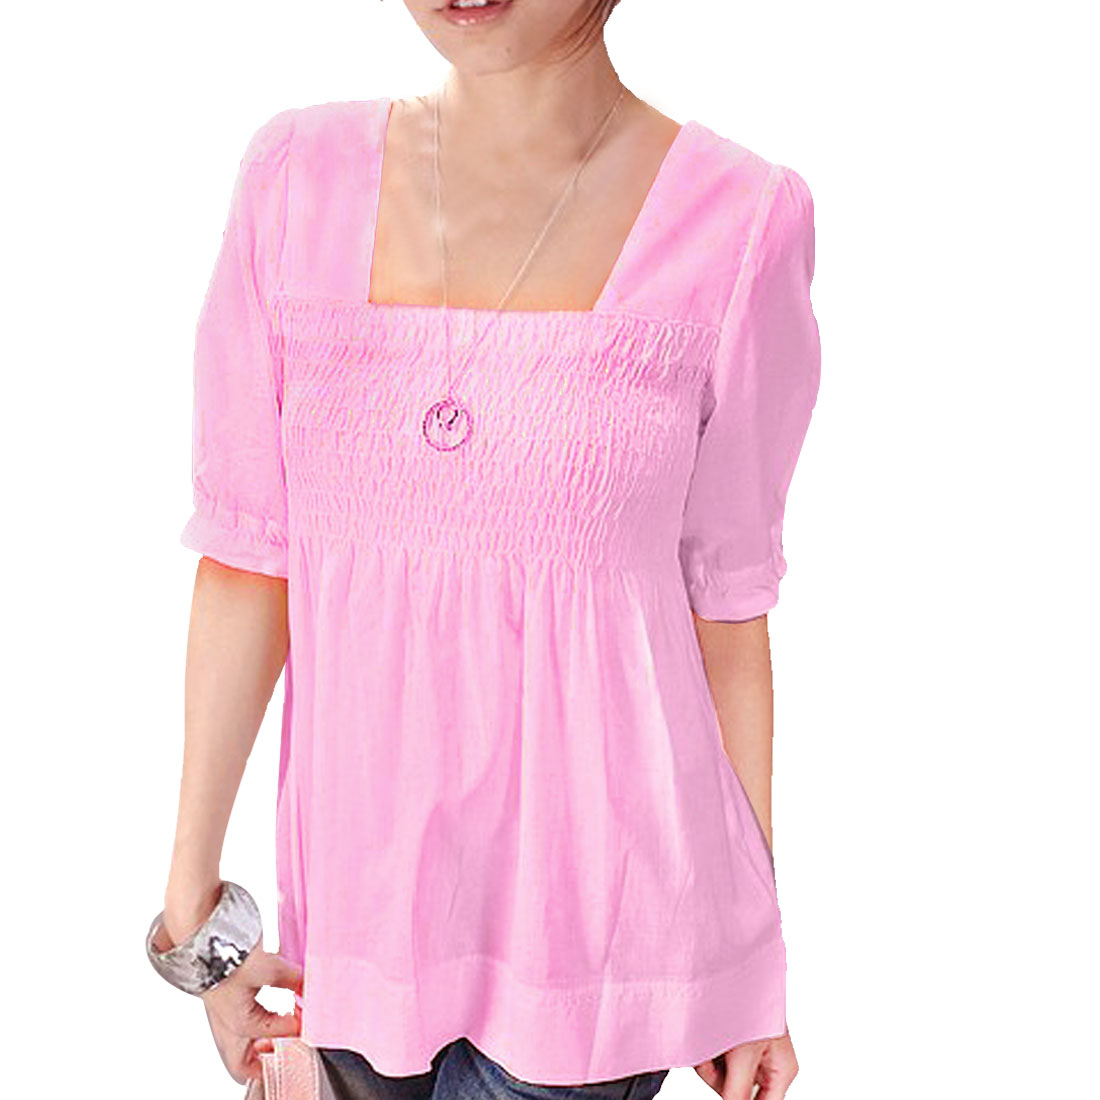 XS Square Neck Short Sleeve Elastic Cuff Princess Blouse Pink for Ladies